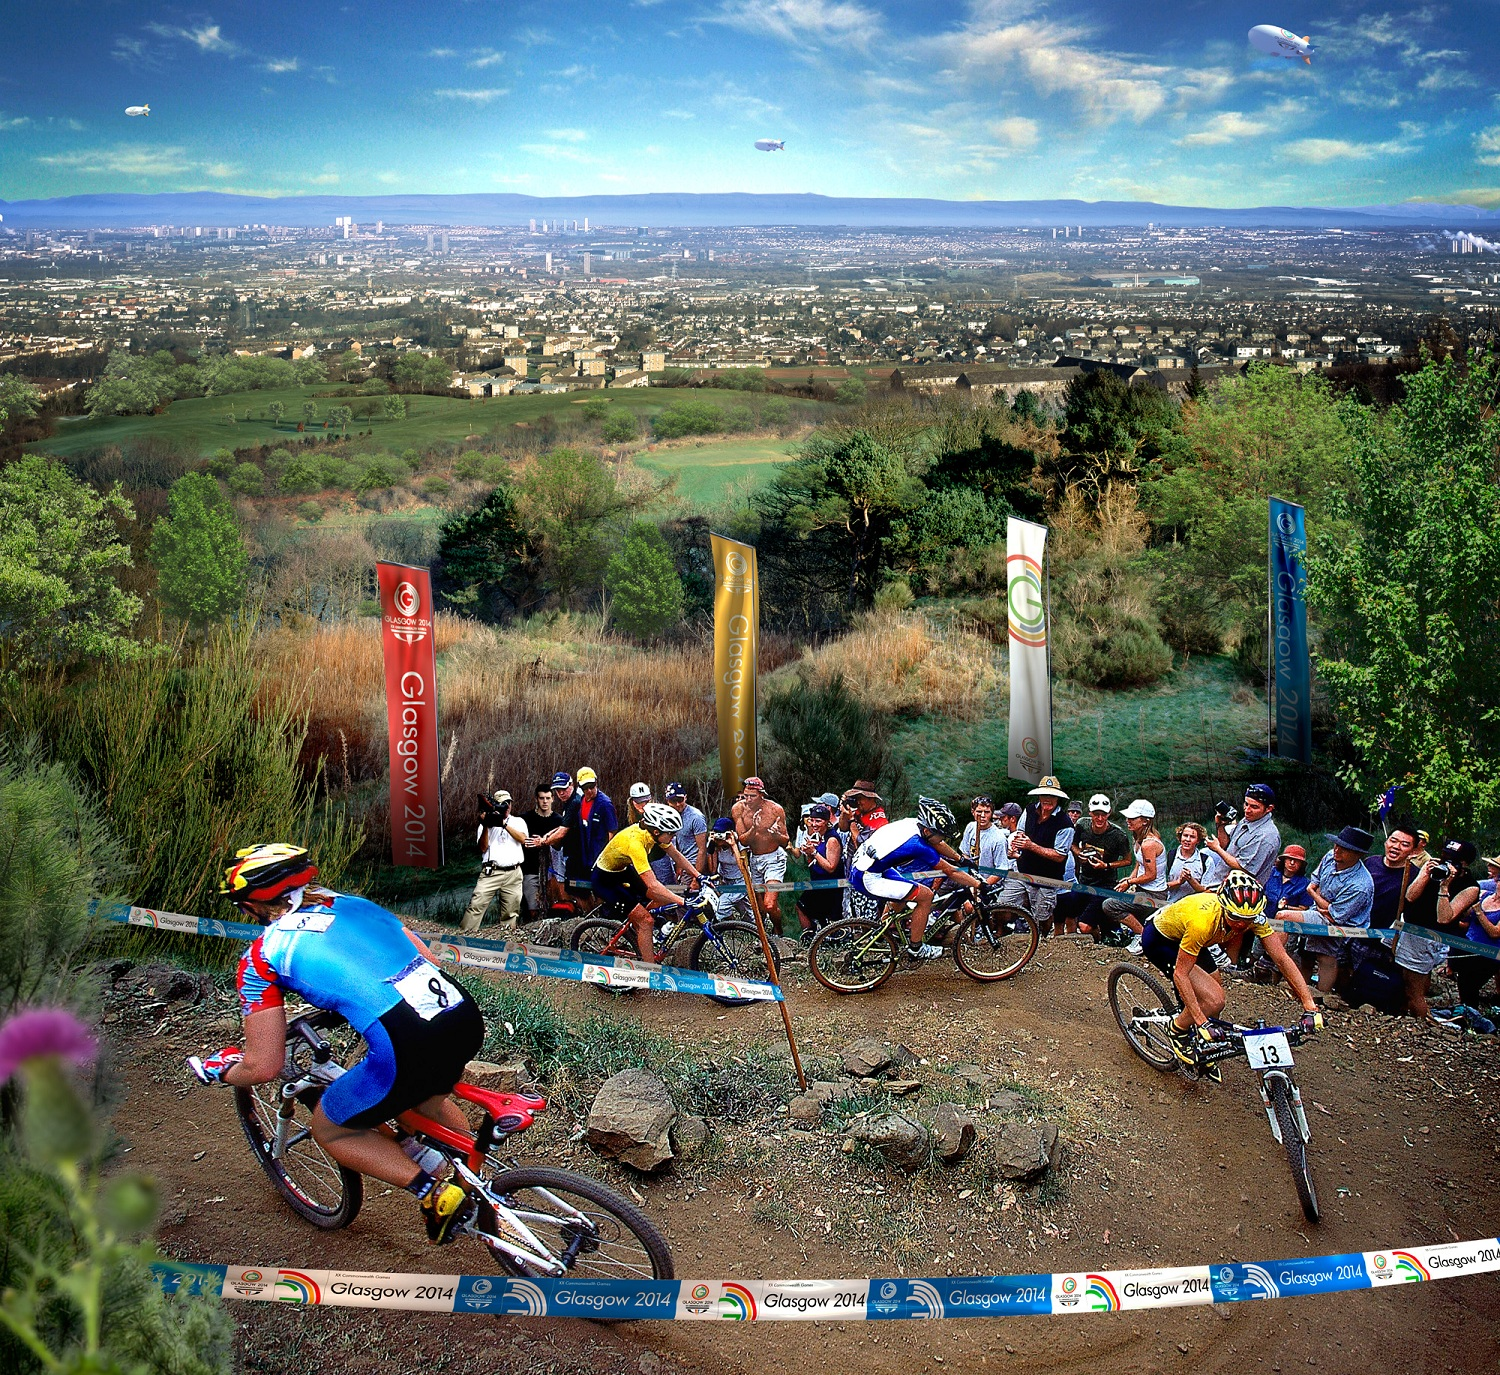 Glasgow 2014 mountain bike course